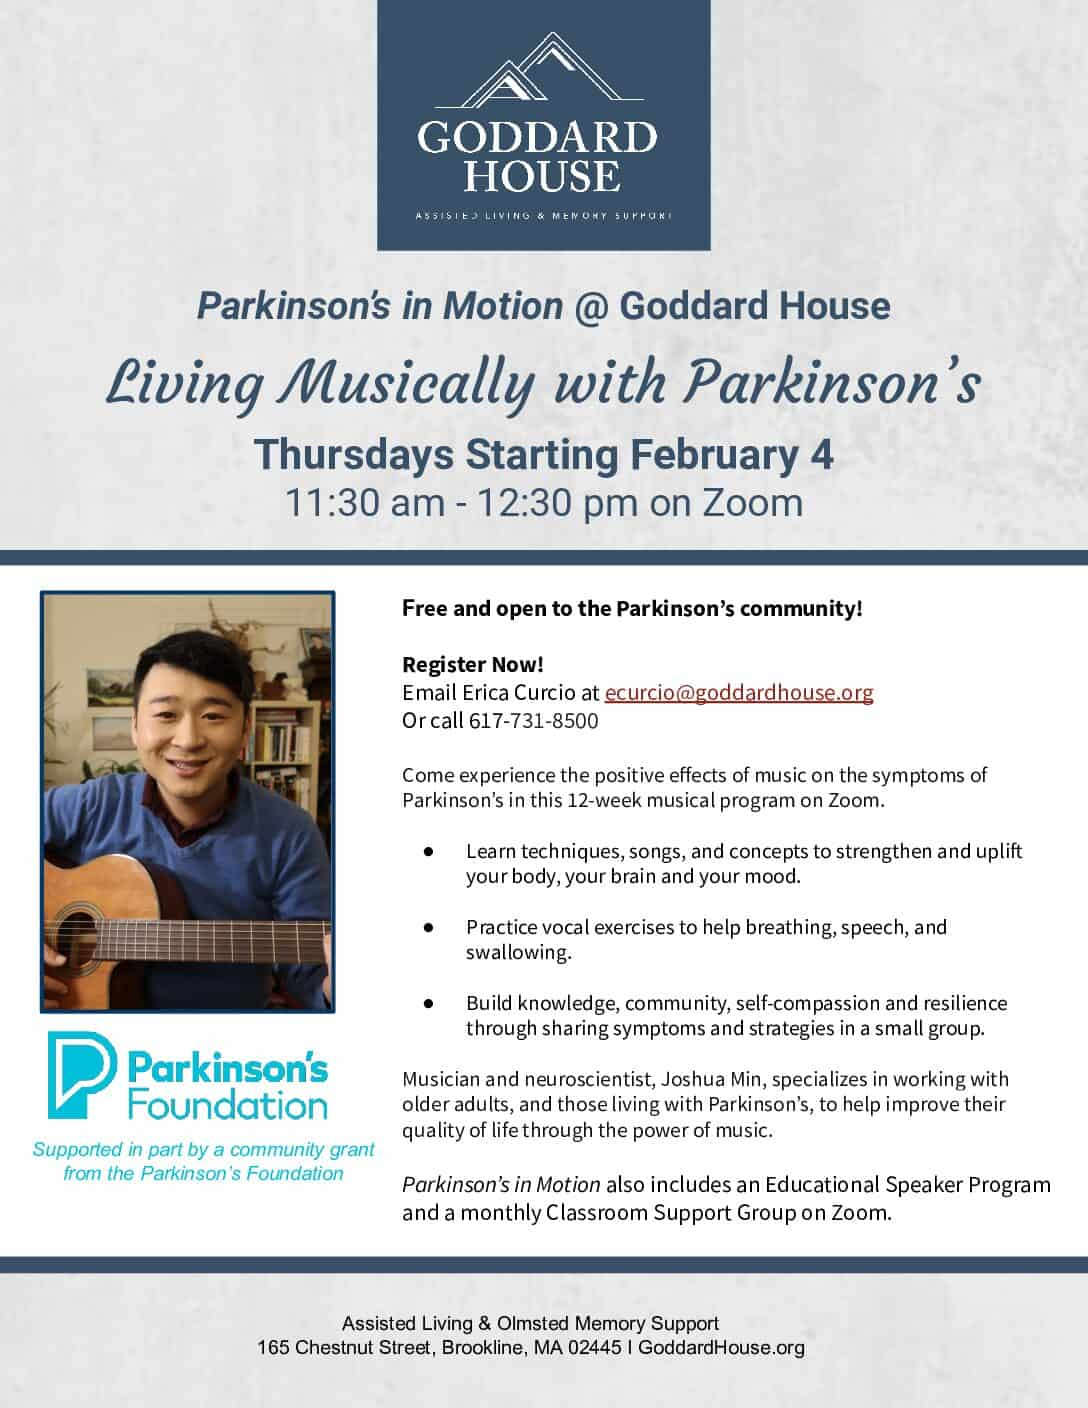 Living Musically with Parkinson's